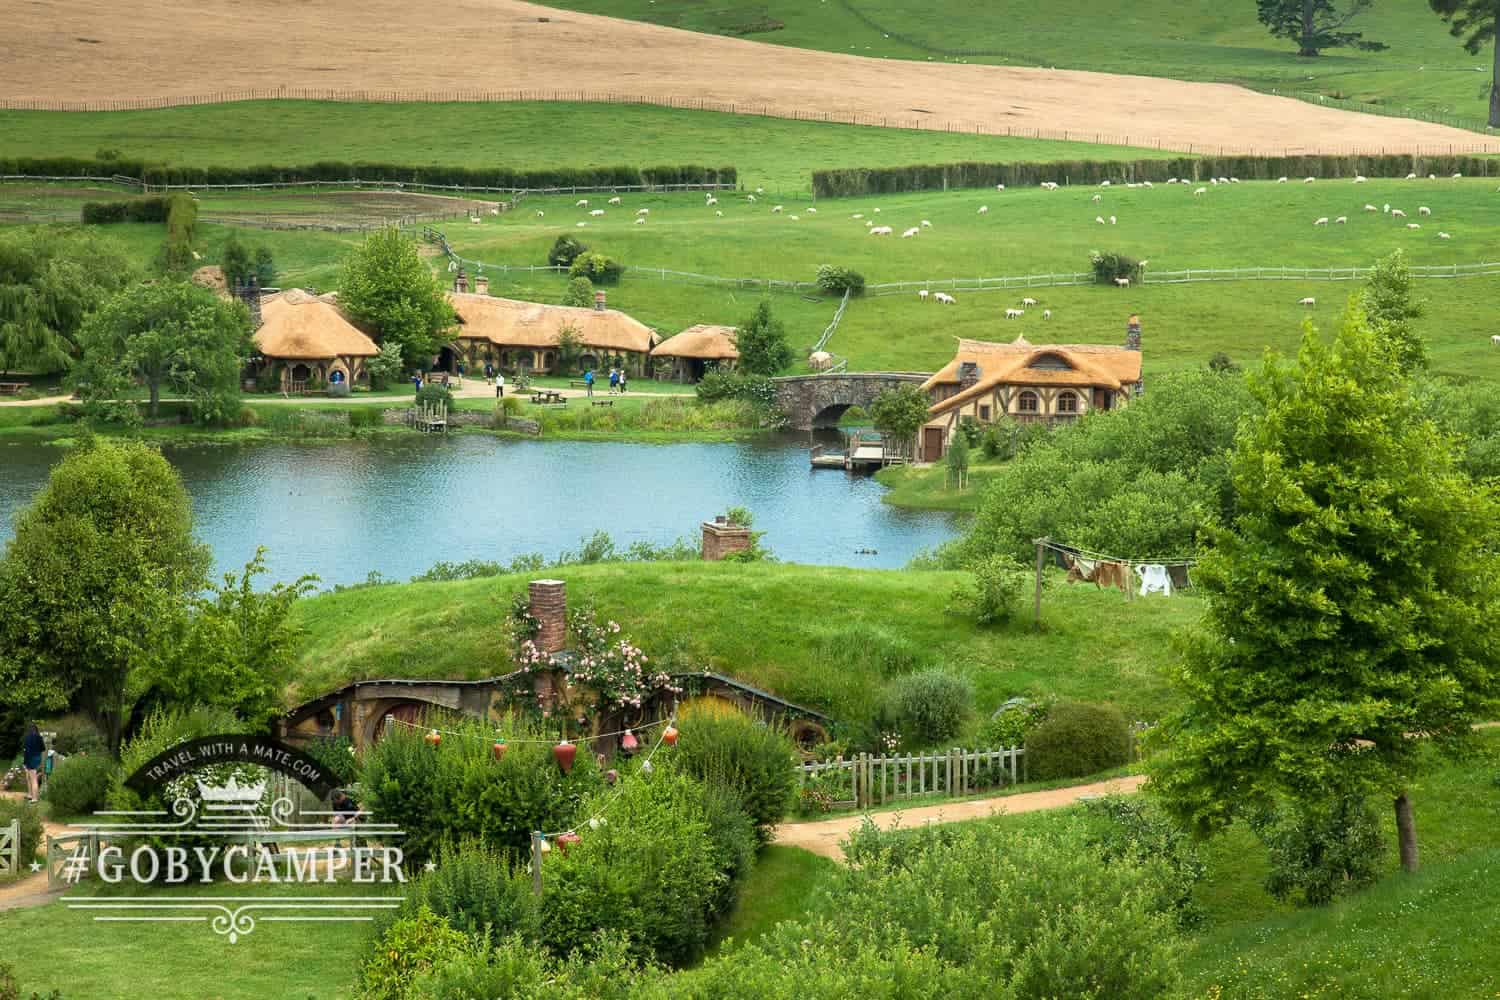 Review of Hobbiton movie set tour